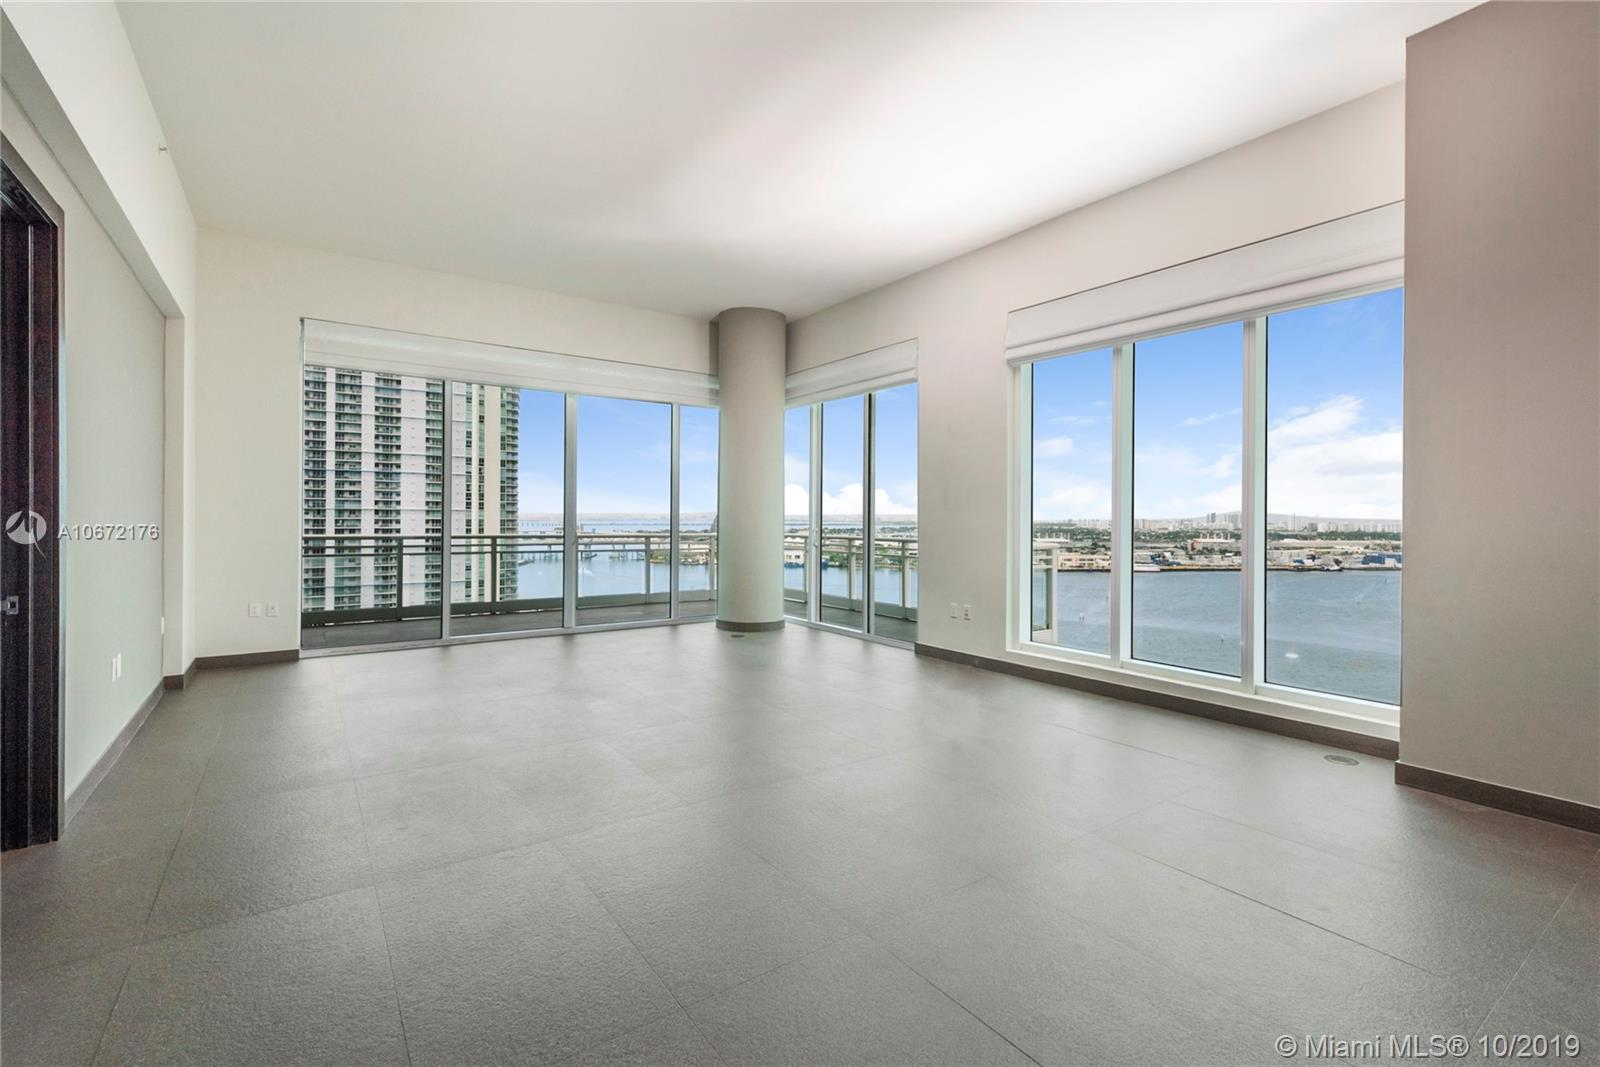 900 Brickell key blvd.-1803 miami-fl-33131-a10672176-Pic01